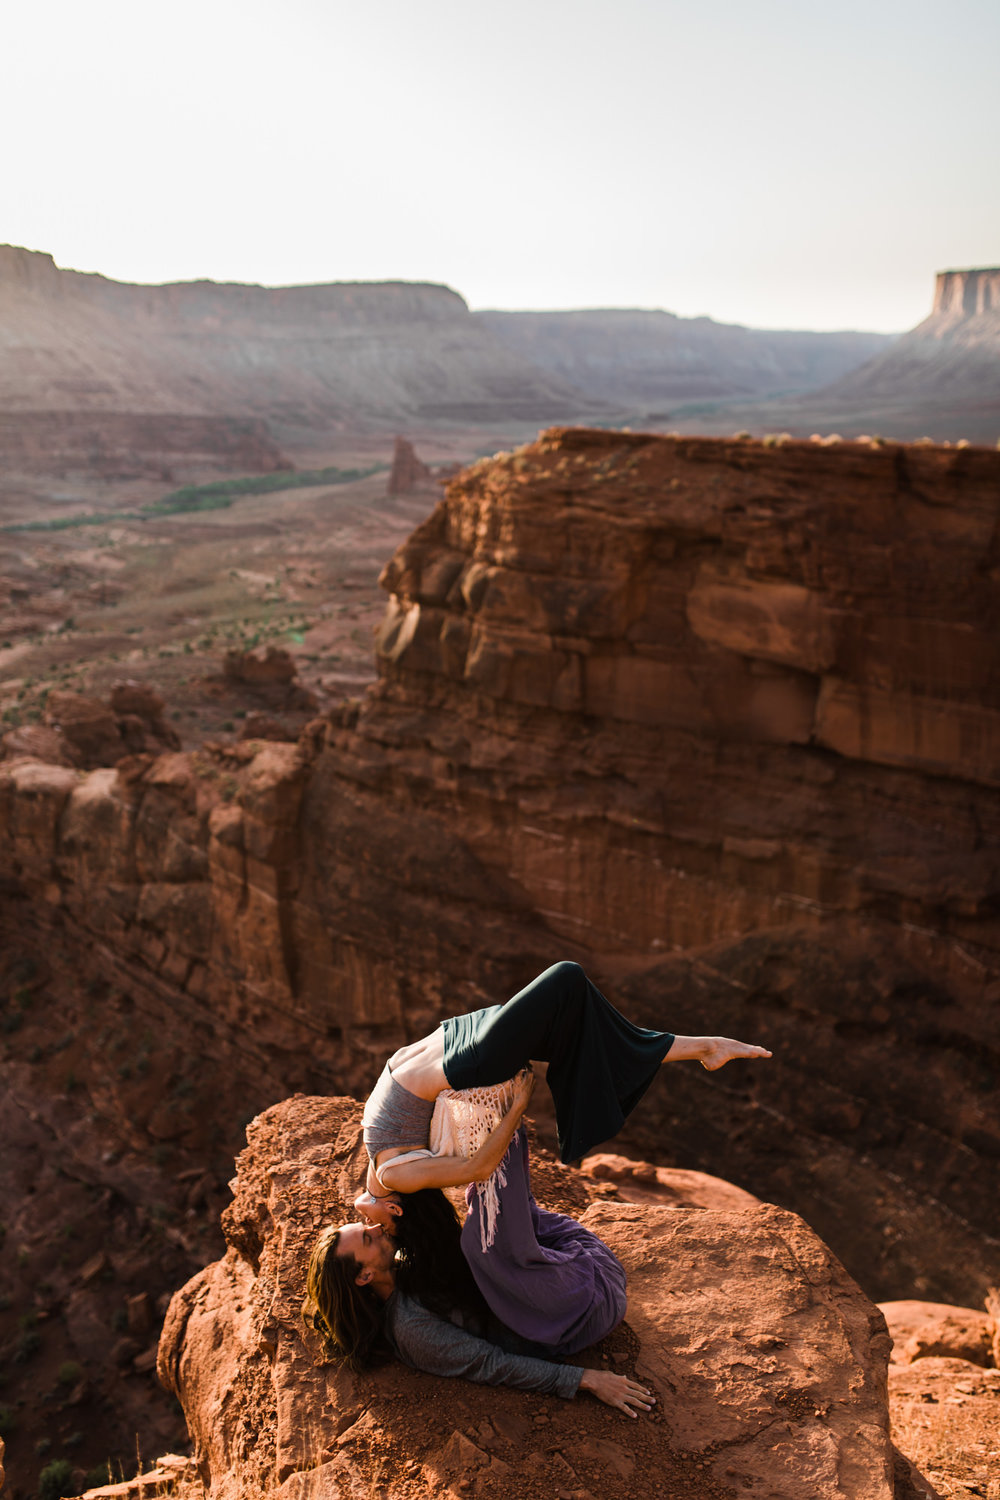 epic acro yoga engagements in moab, utah | destination engagement photo inspiration | utah adventure elopement photographers | the hearnes adventure photography | www.thehearnes.com